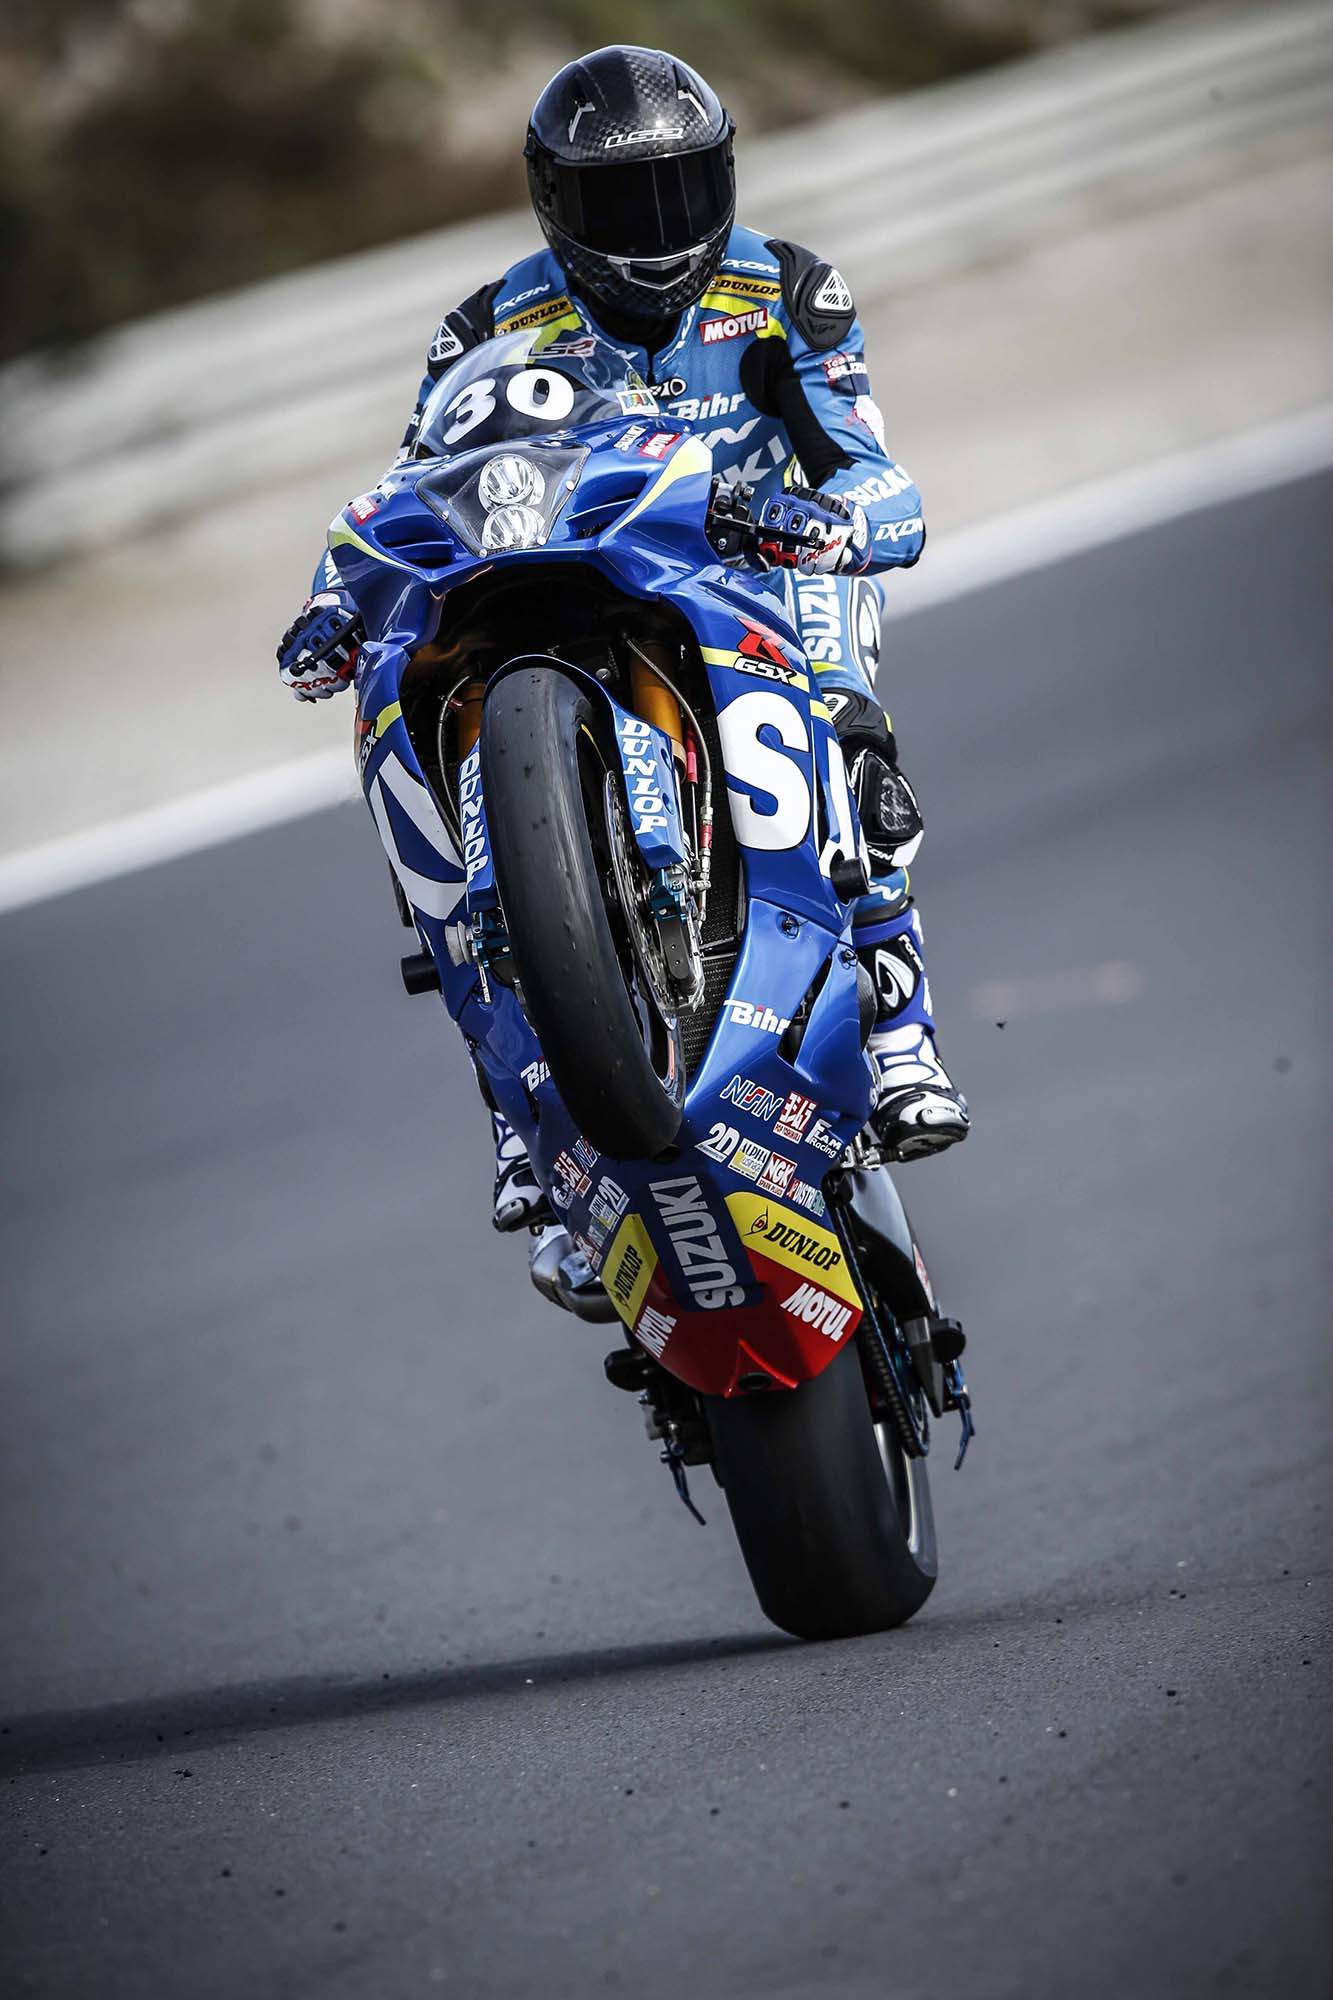 Racing Bike Photos: 2015 Suzuki Gsx-r1000 Endurance Race Bike